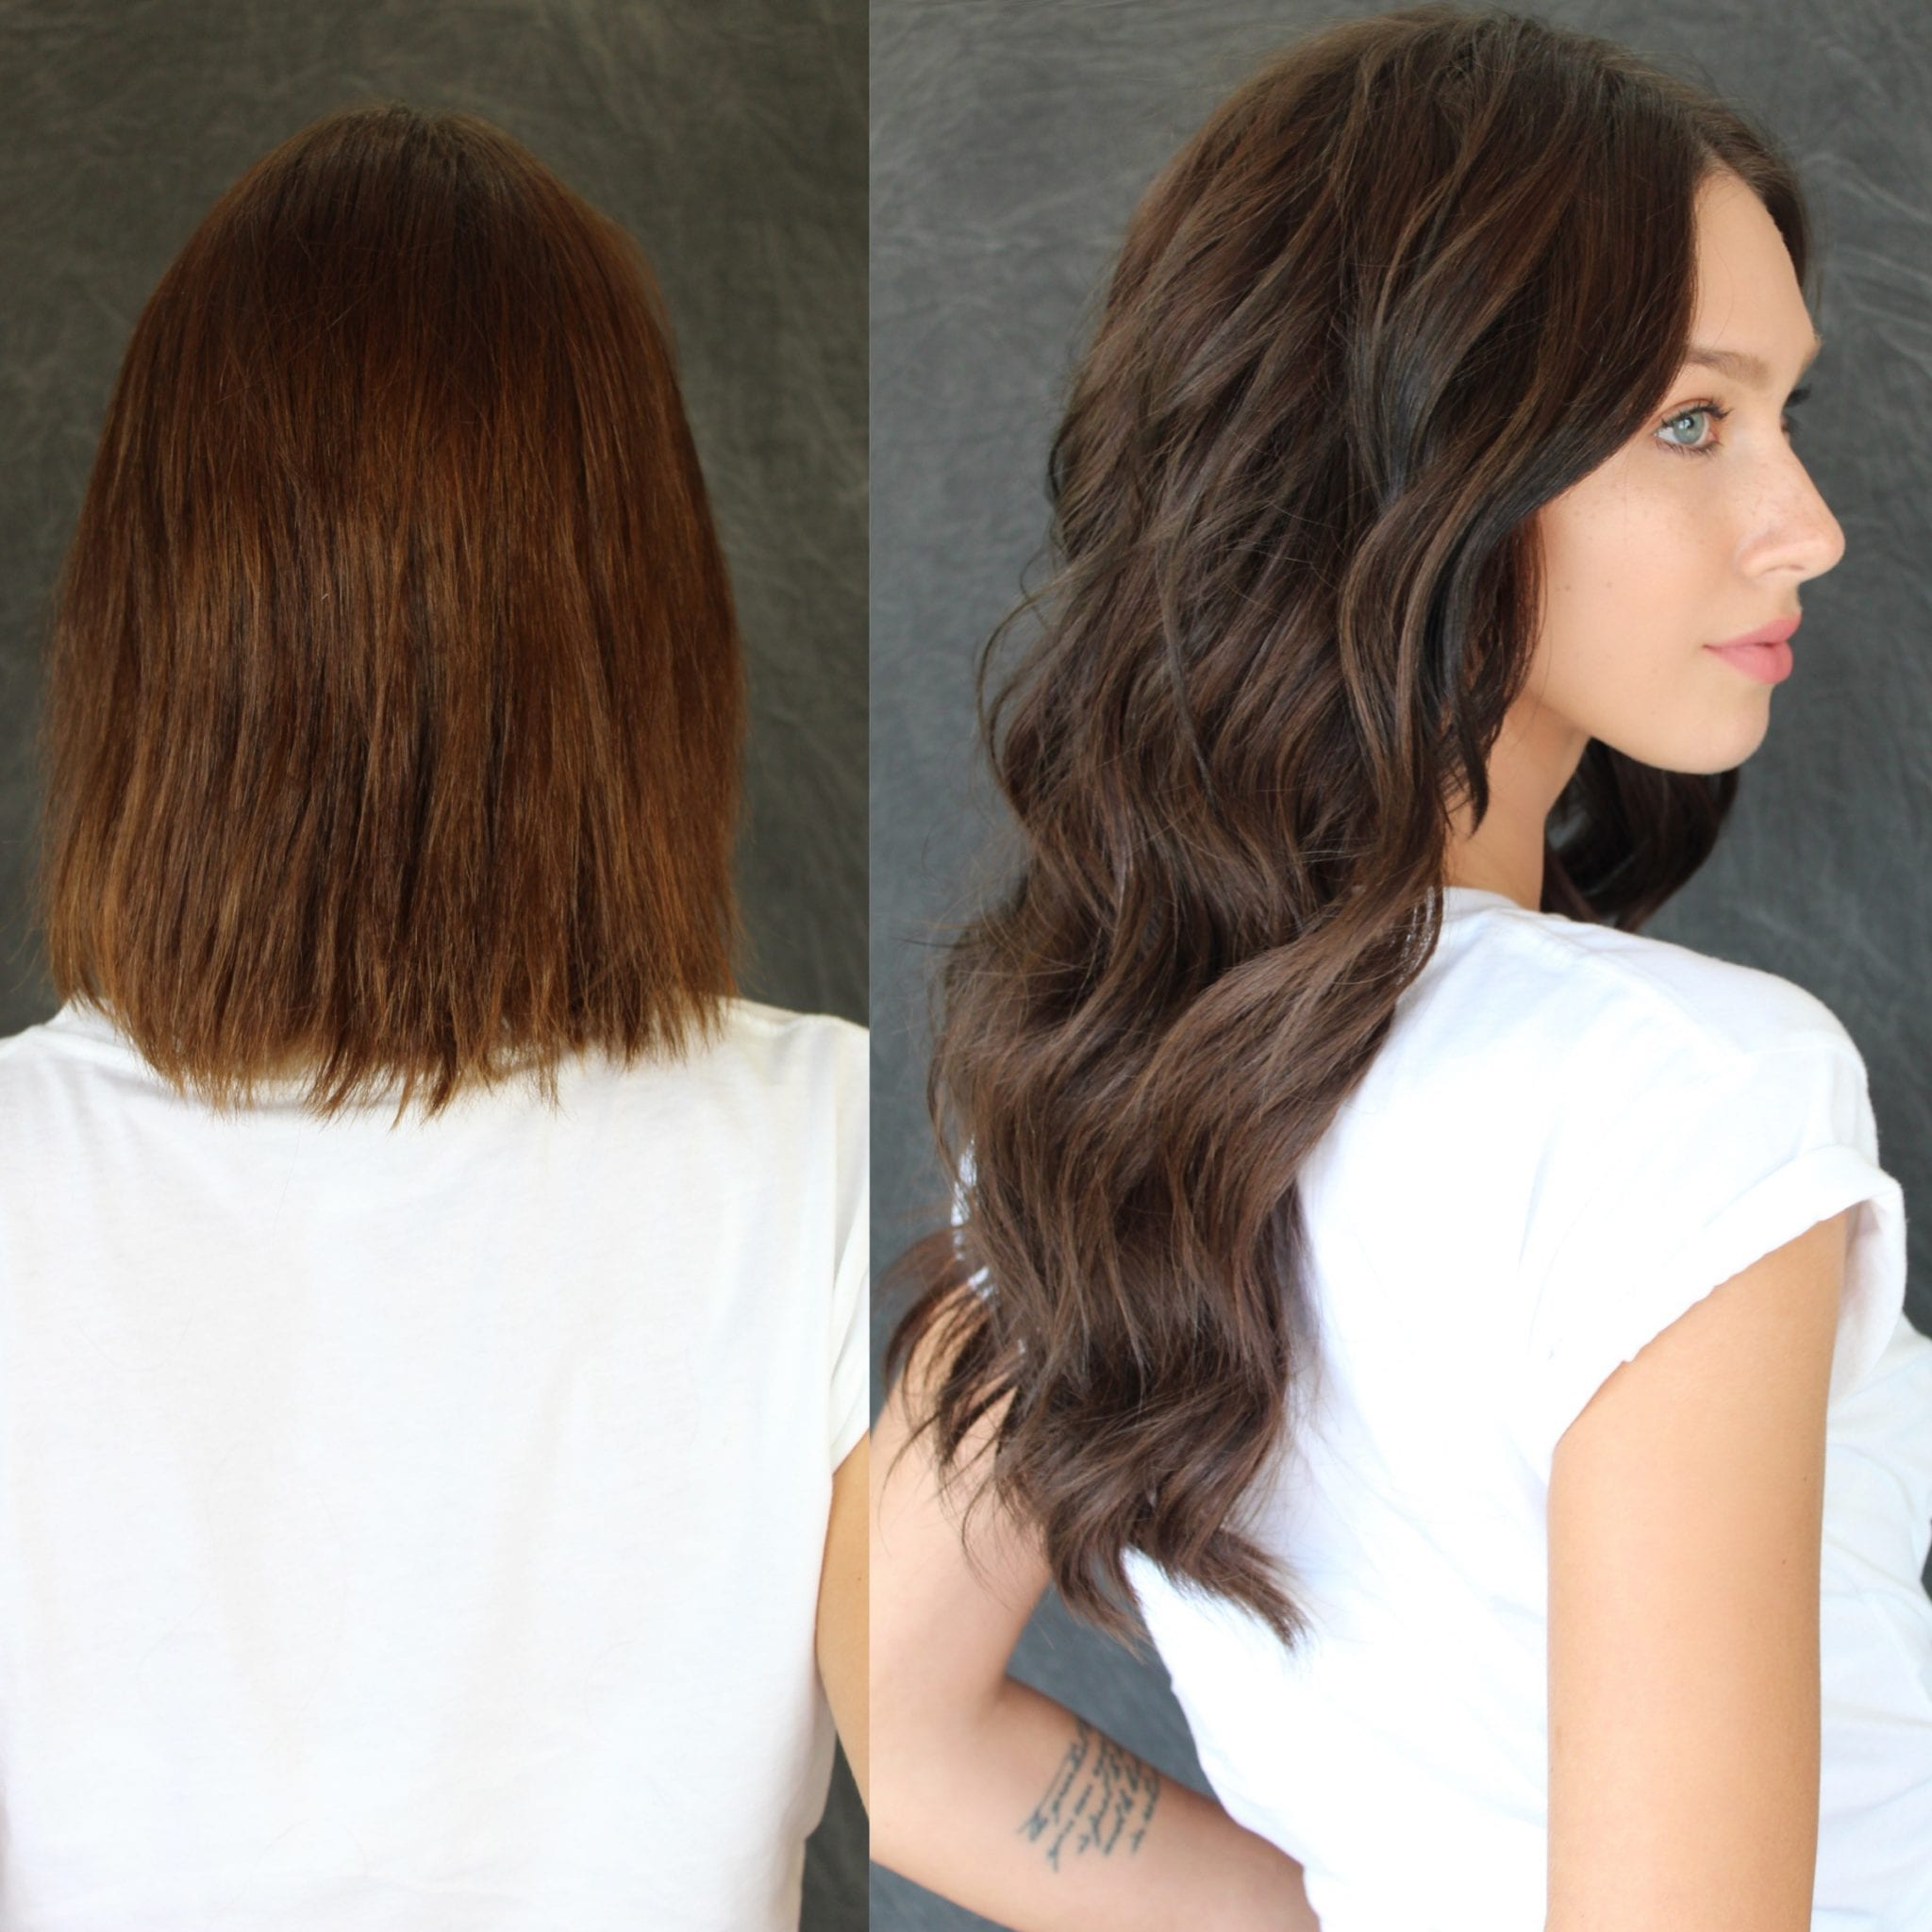 DKW Styling - Natural Beaded Rows On Brunette's